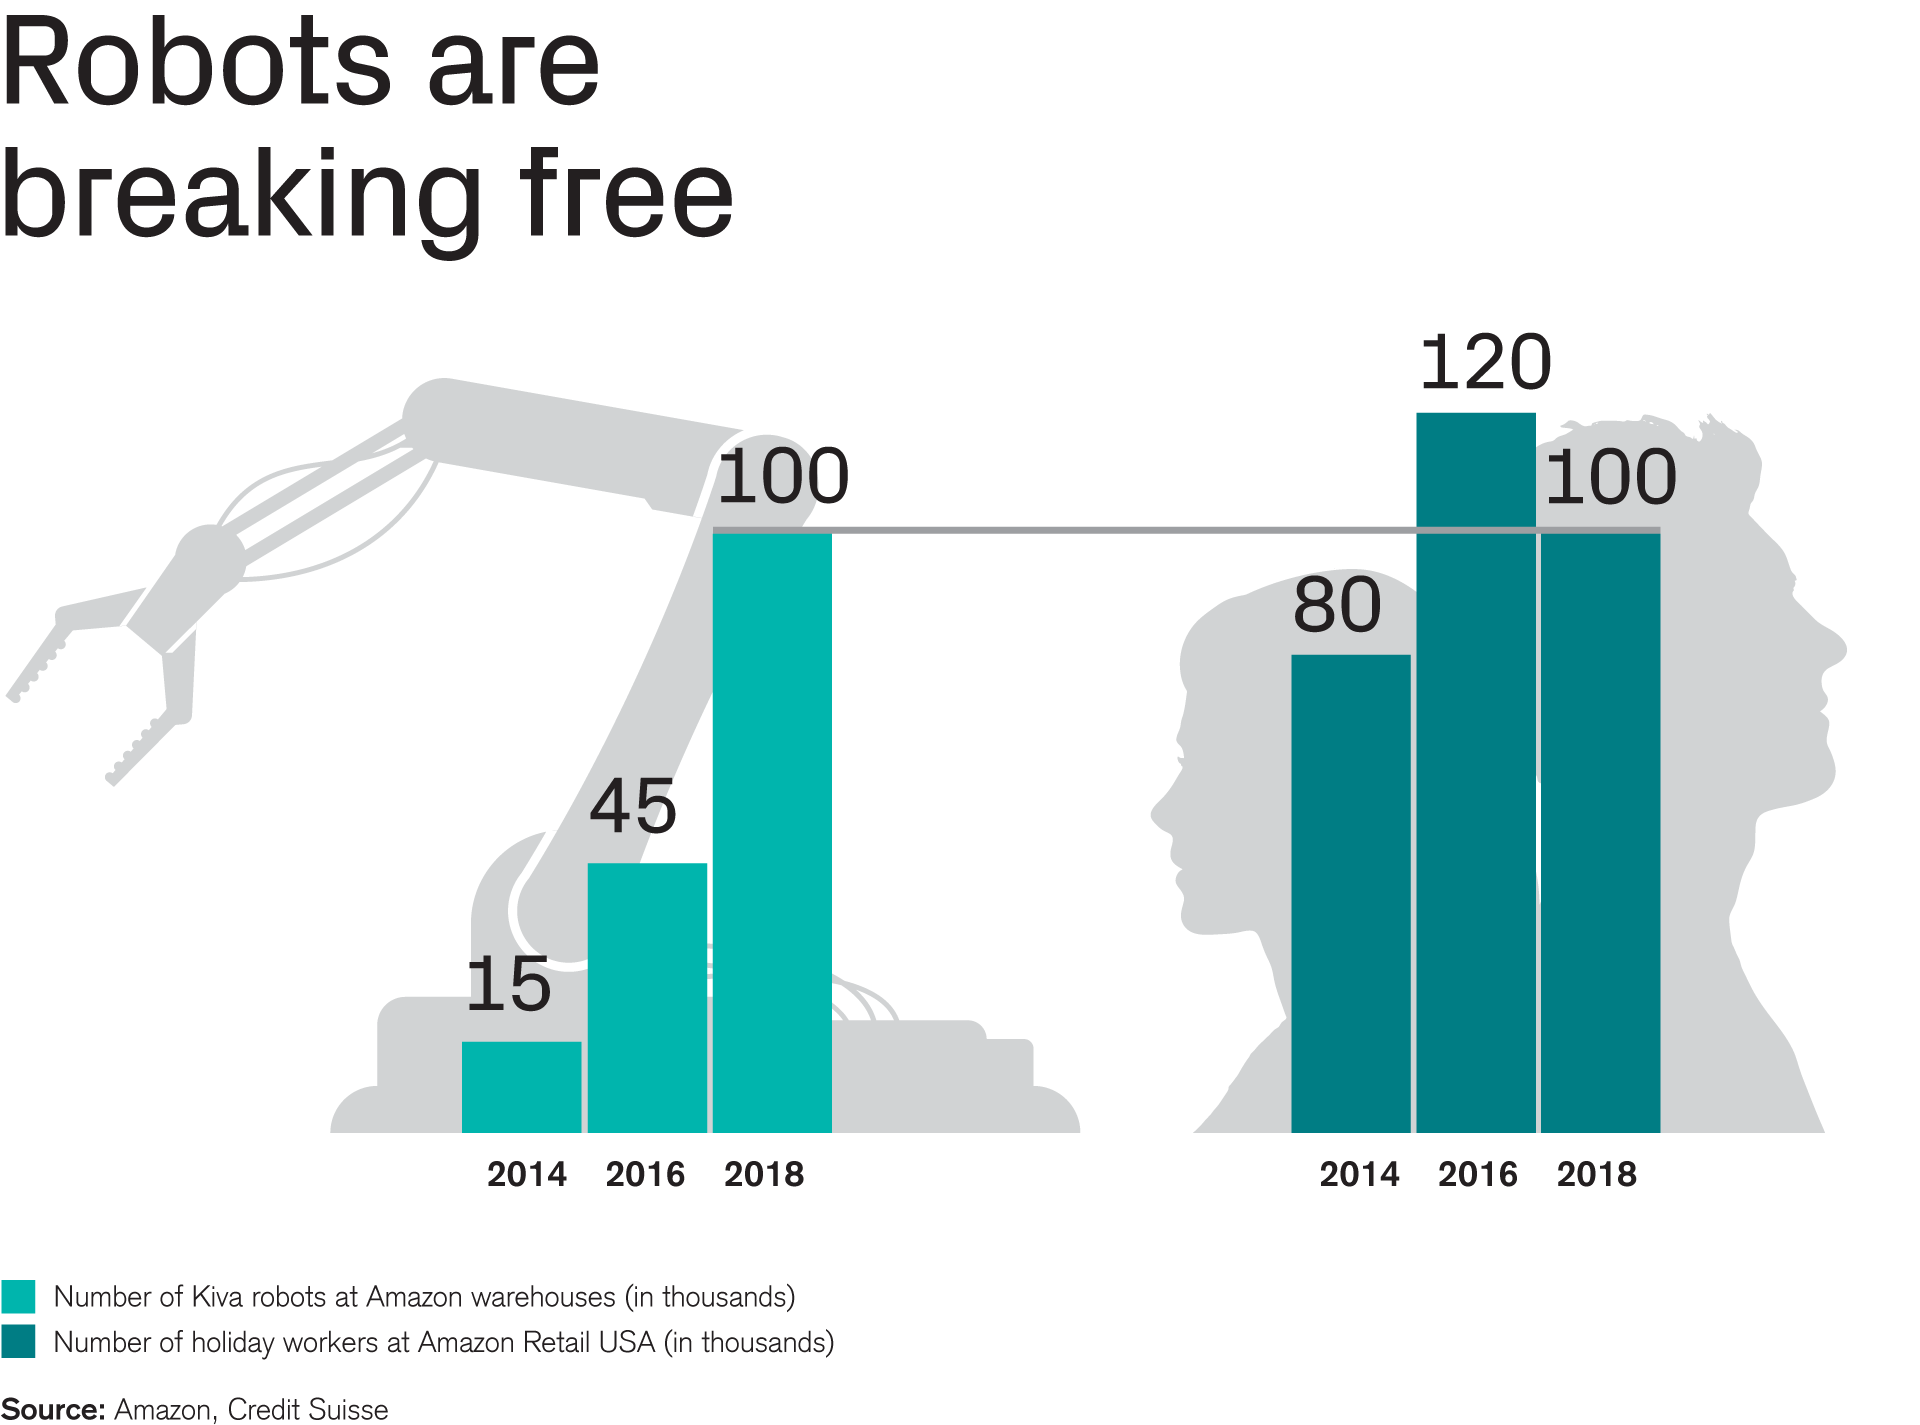 Robots are breaking free